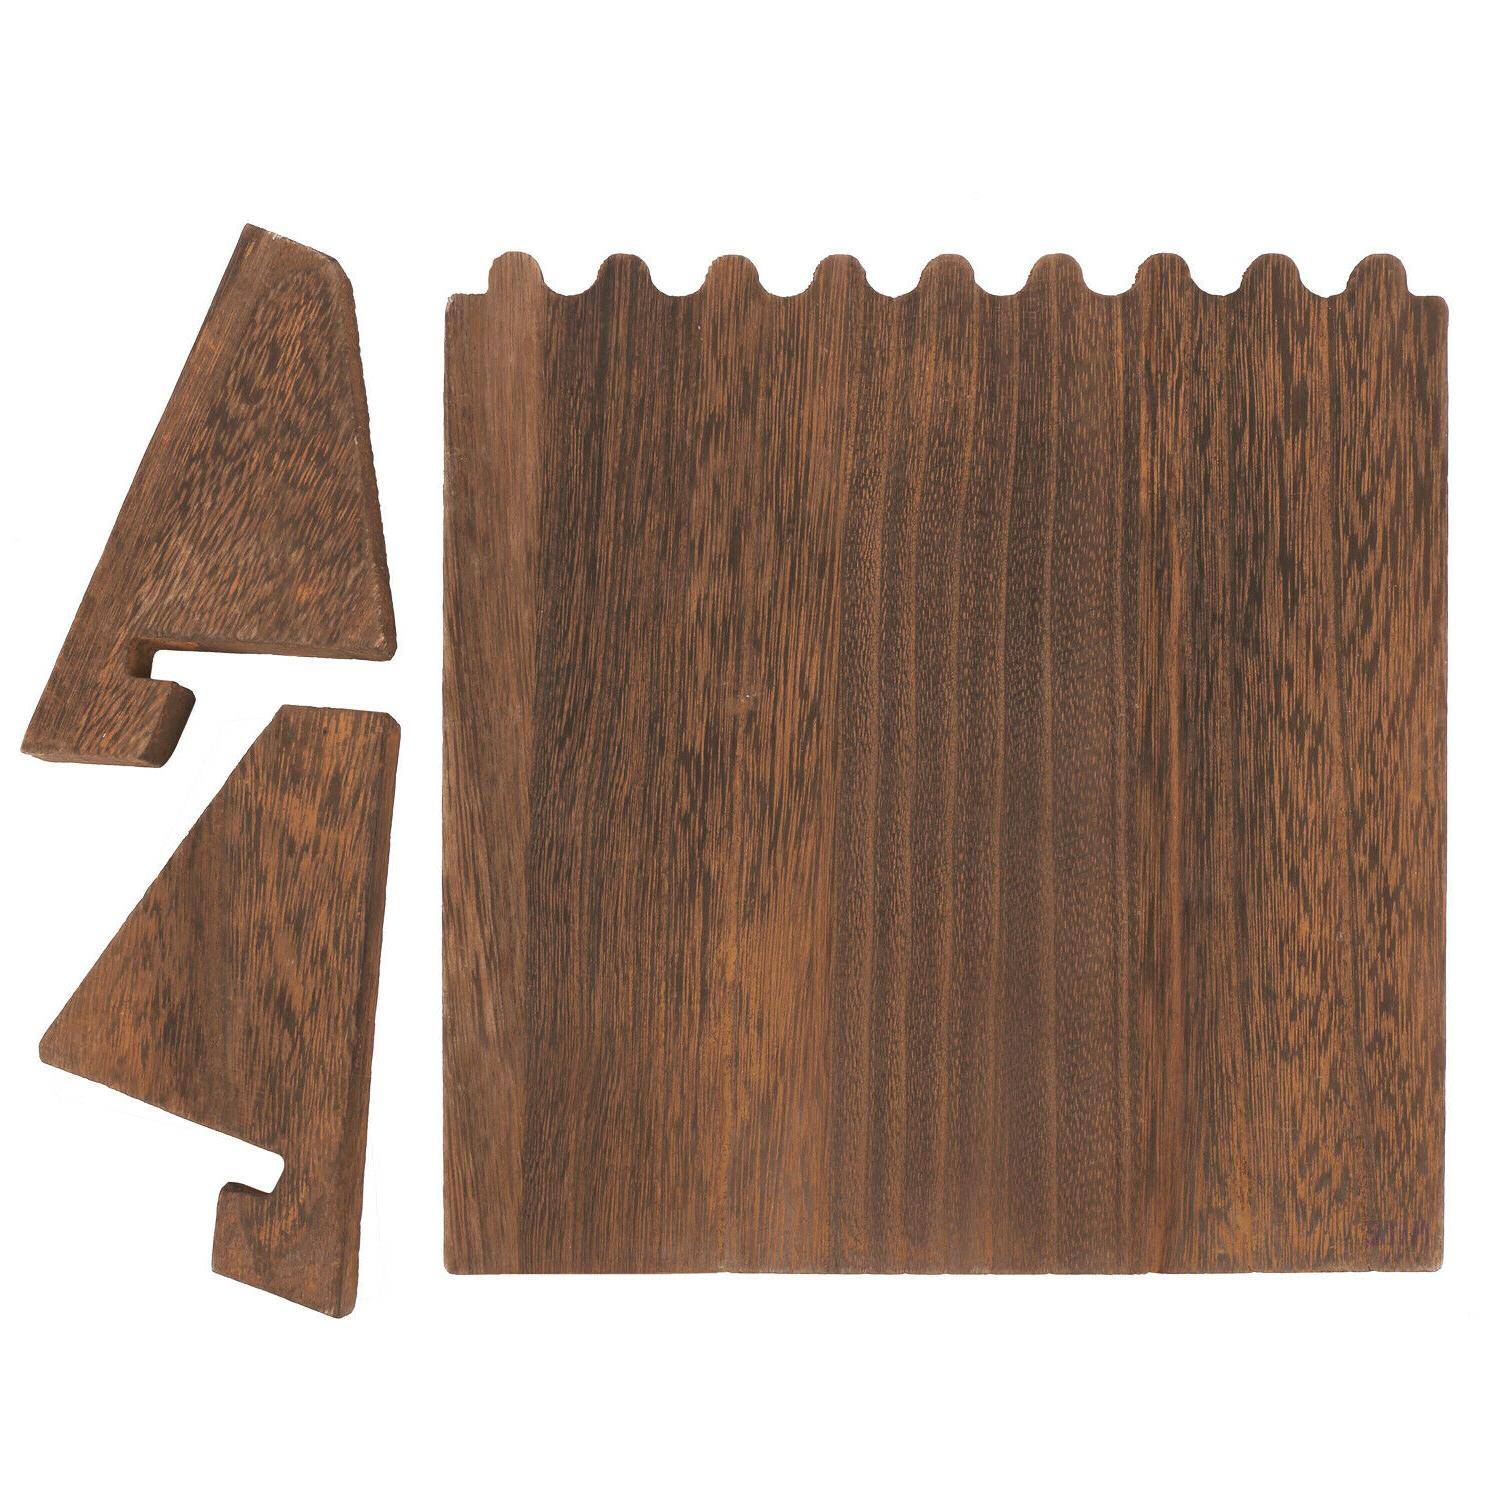 Wooden Plank Necklace Display for Necklaces, Brown Color